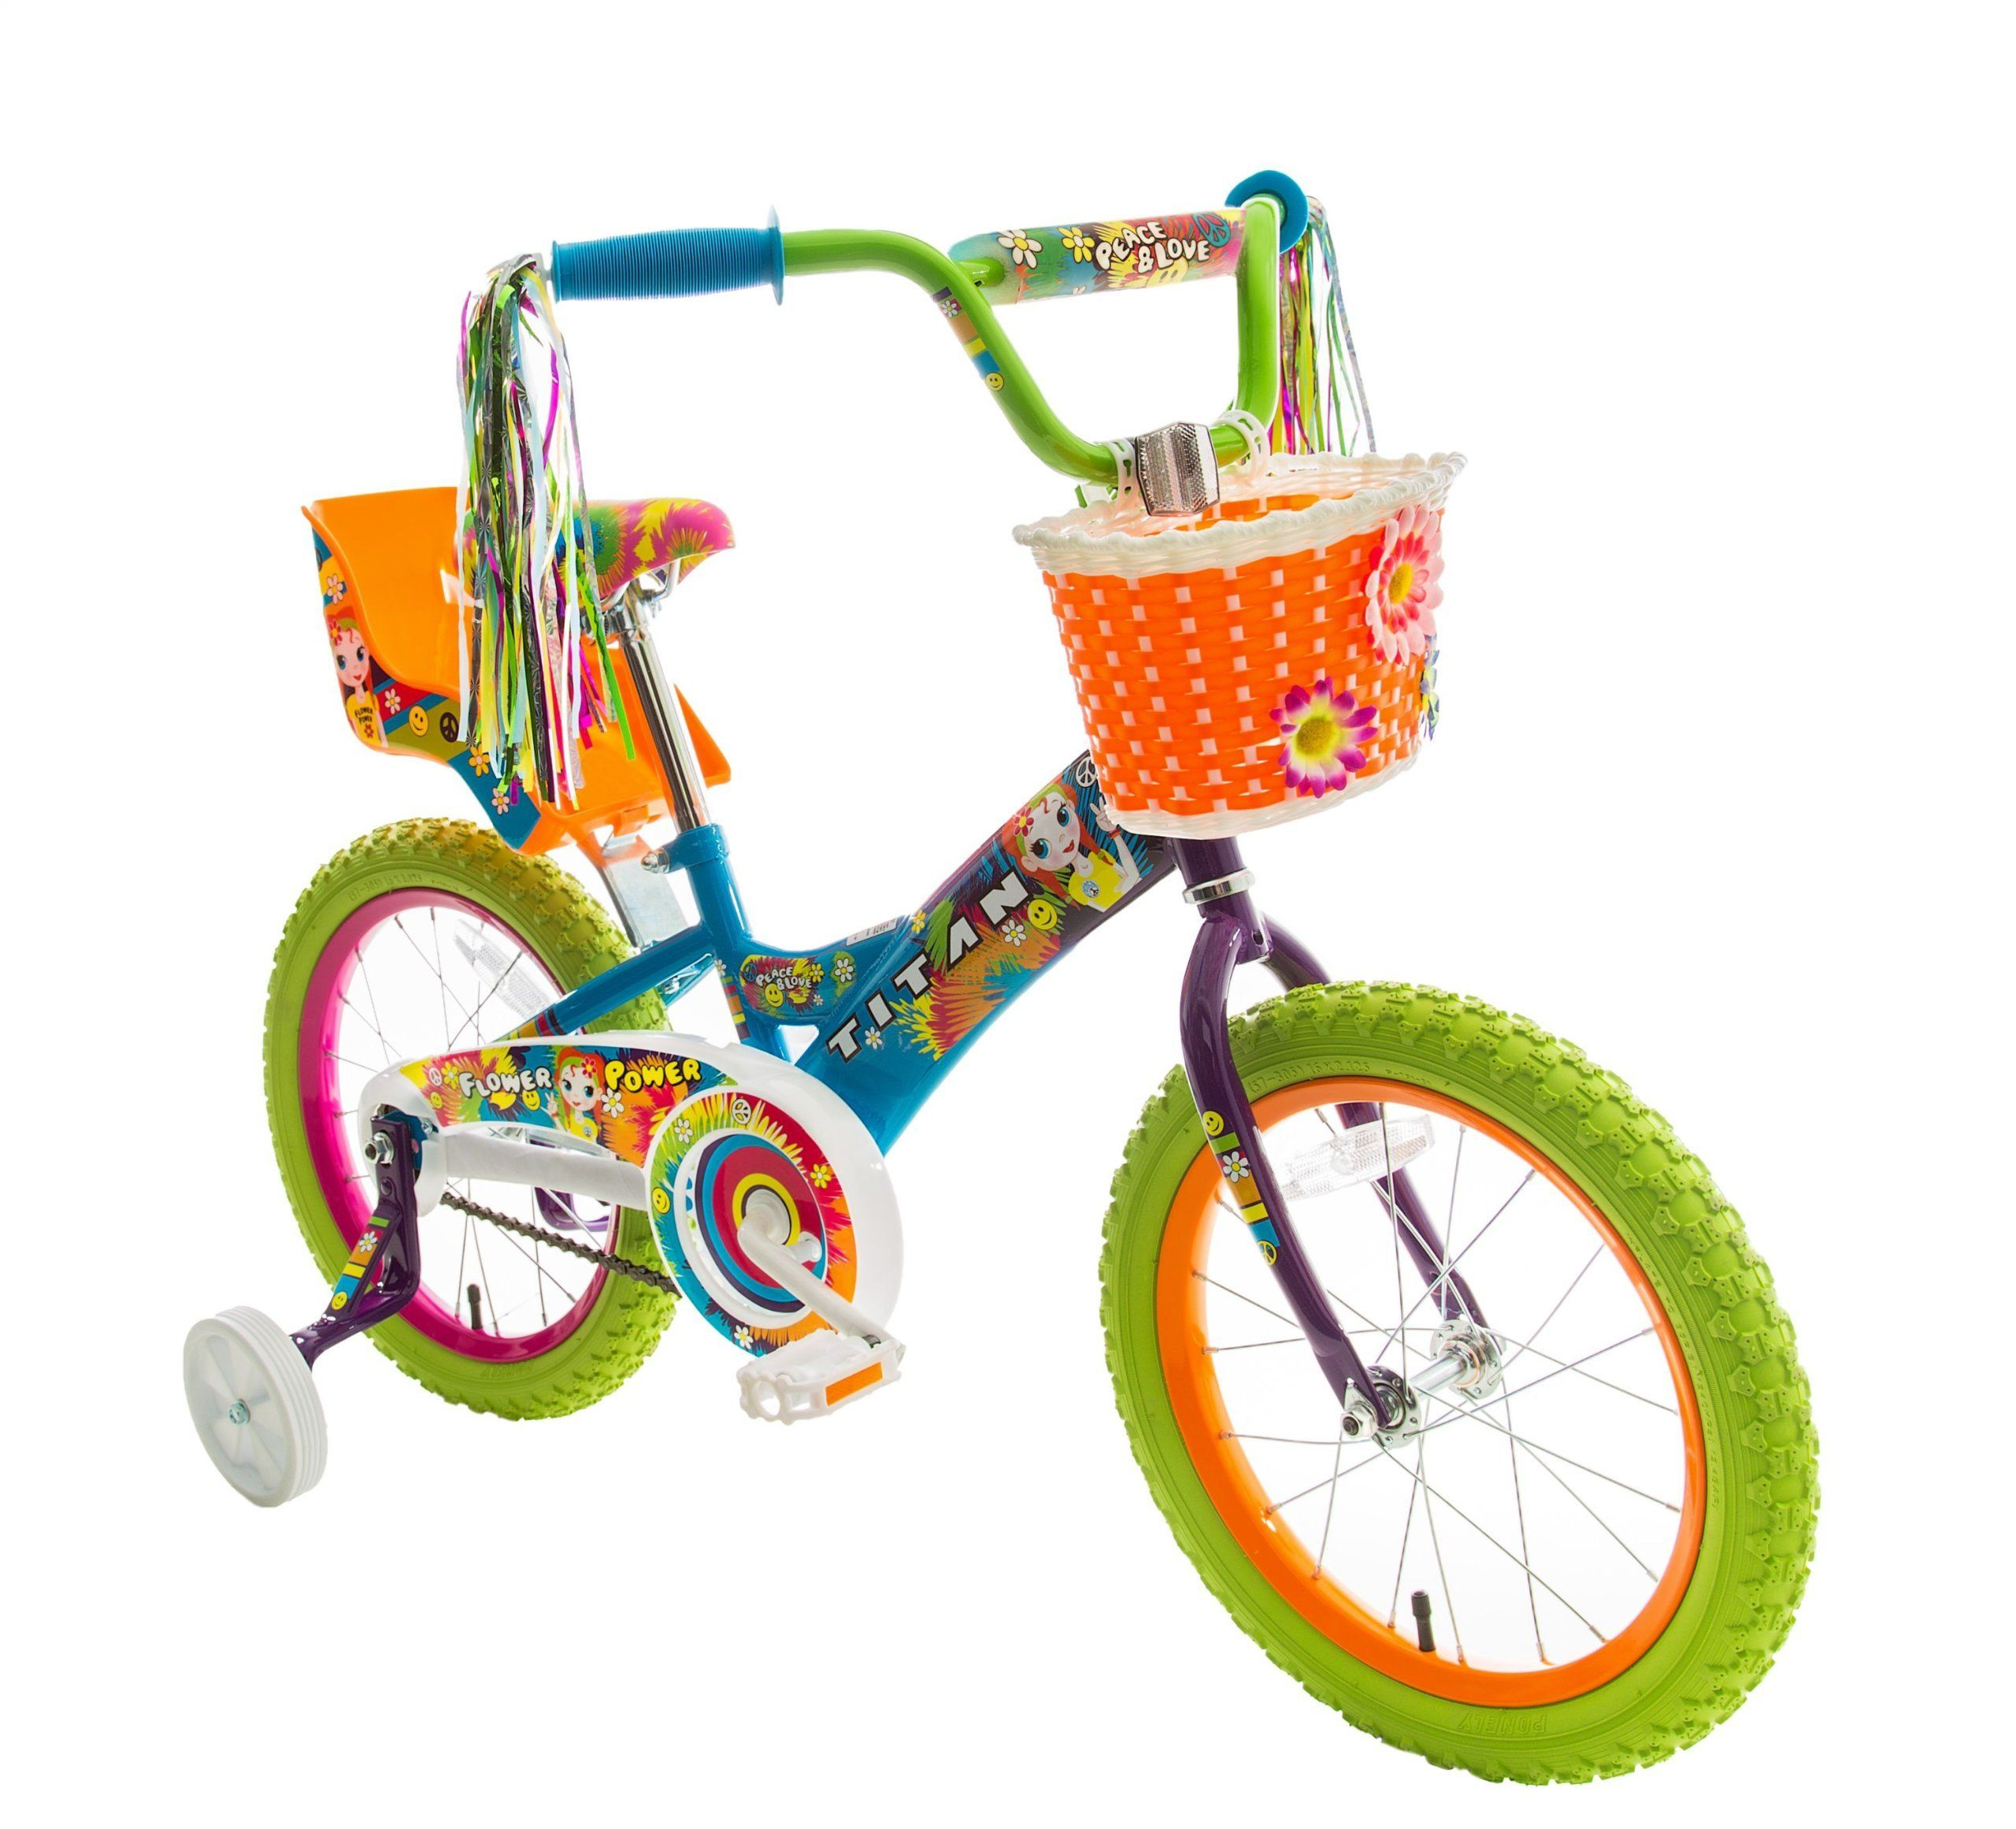 Titan Girl S Flower Power Princess Bmx Bike Multi Color 16 Inch Lovely Novelty Bmx Bikes Bike With Training Wheels Kids Bicycle